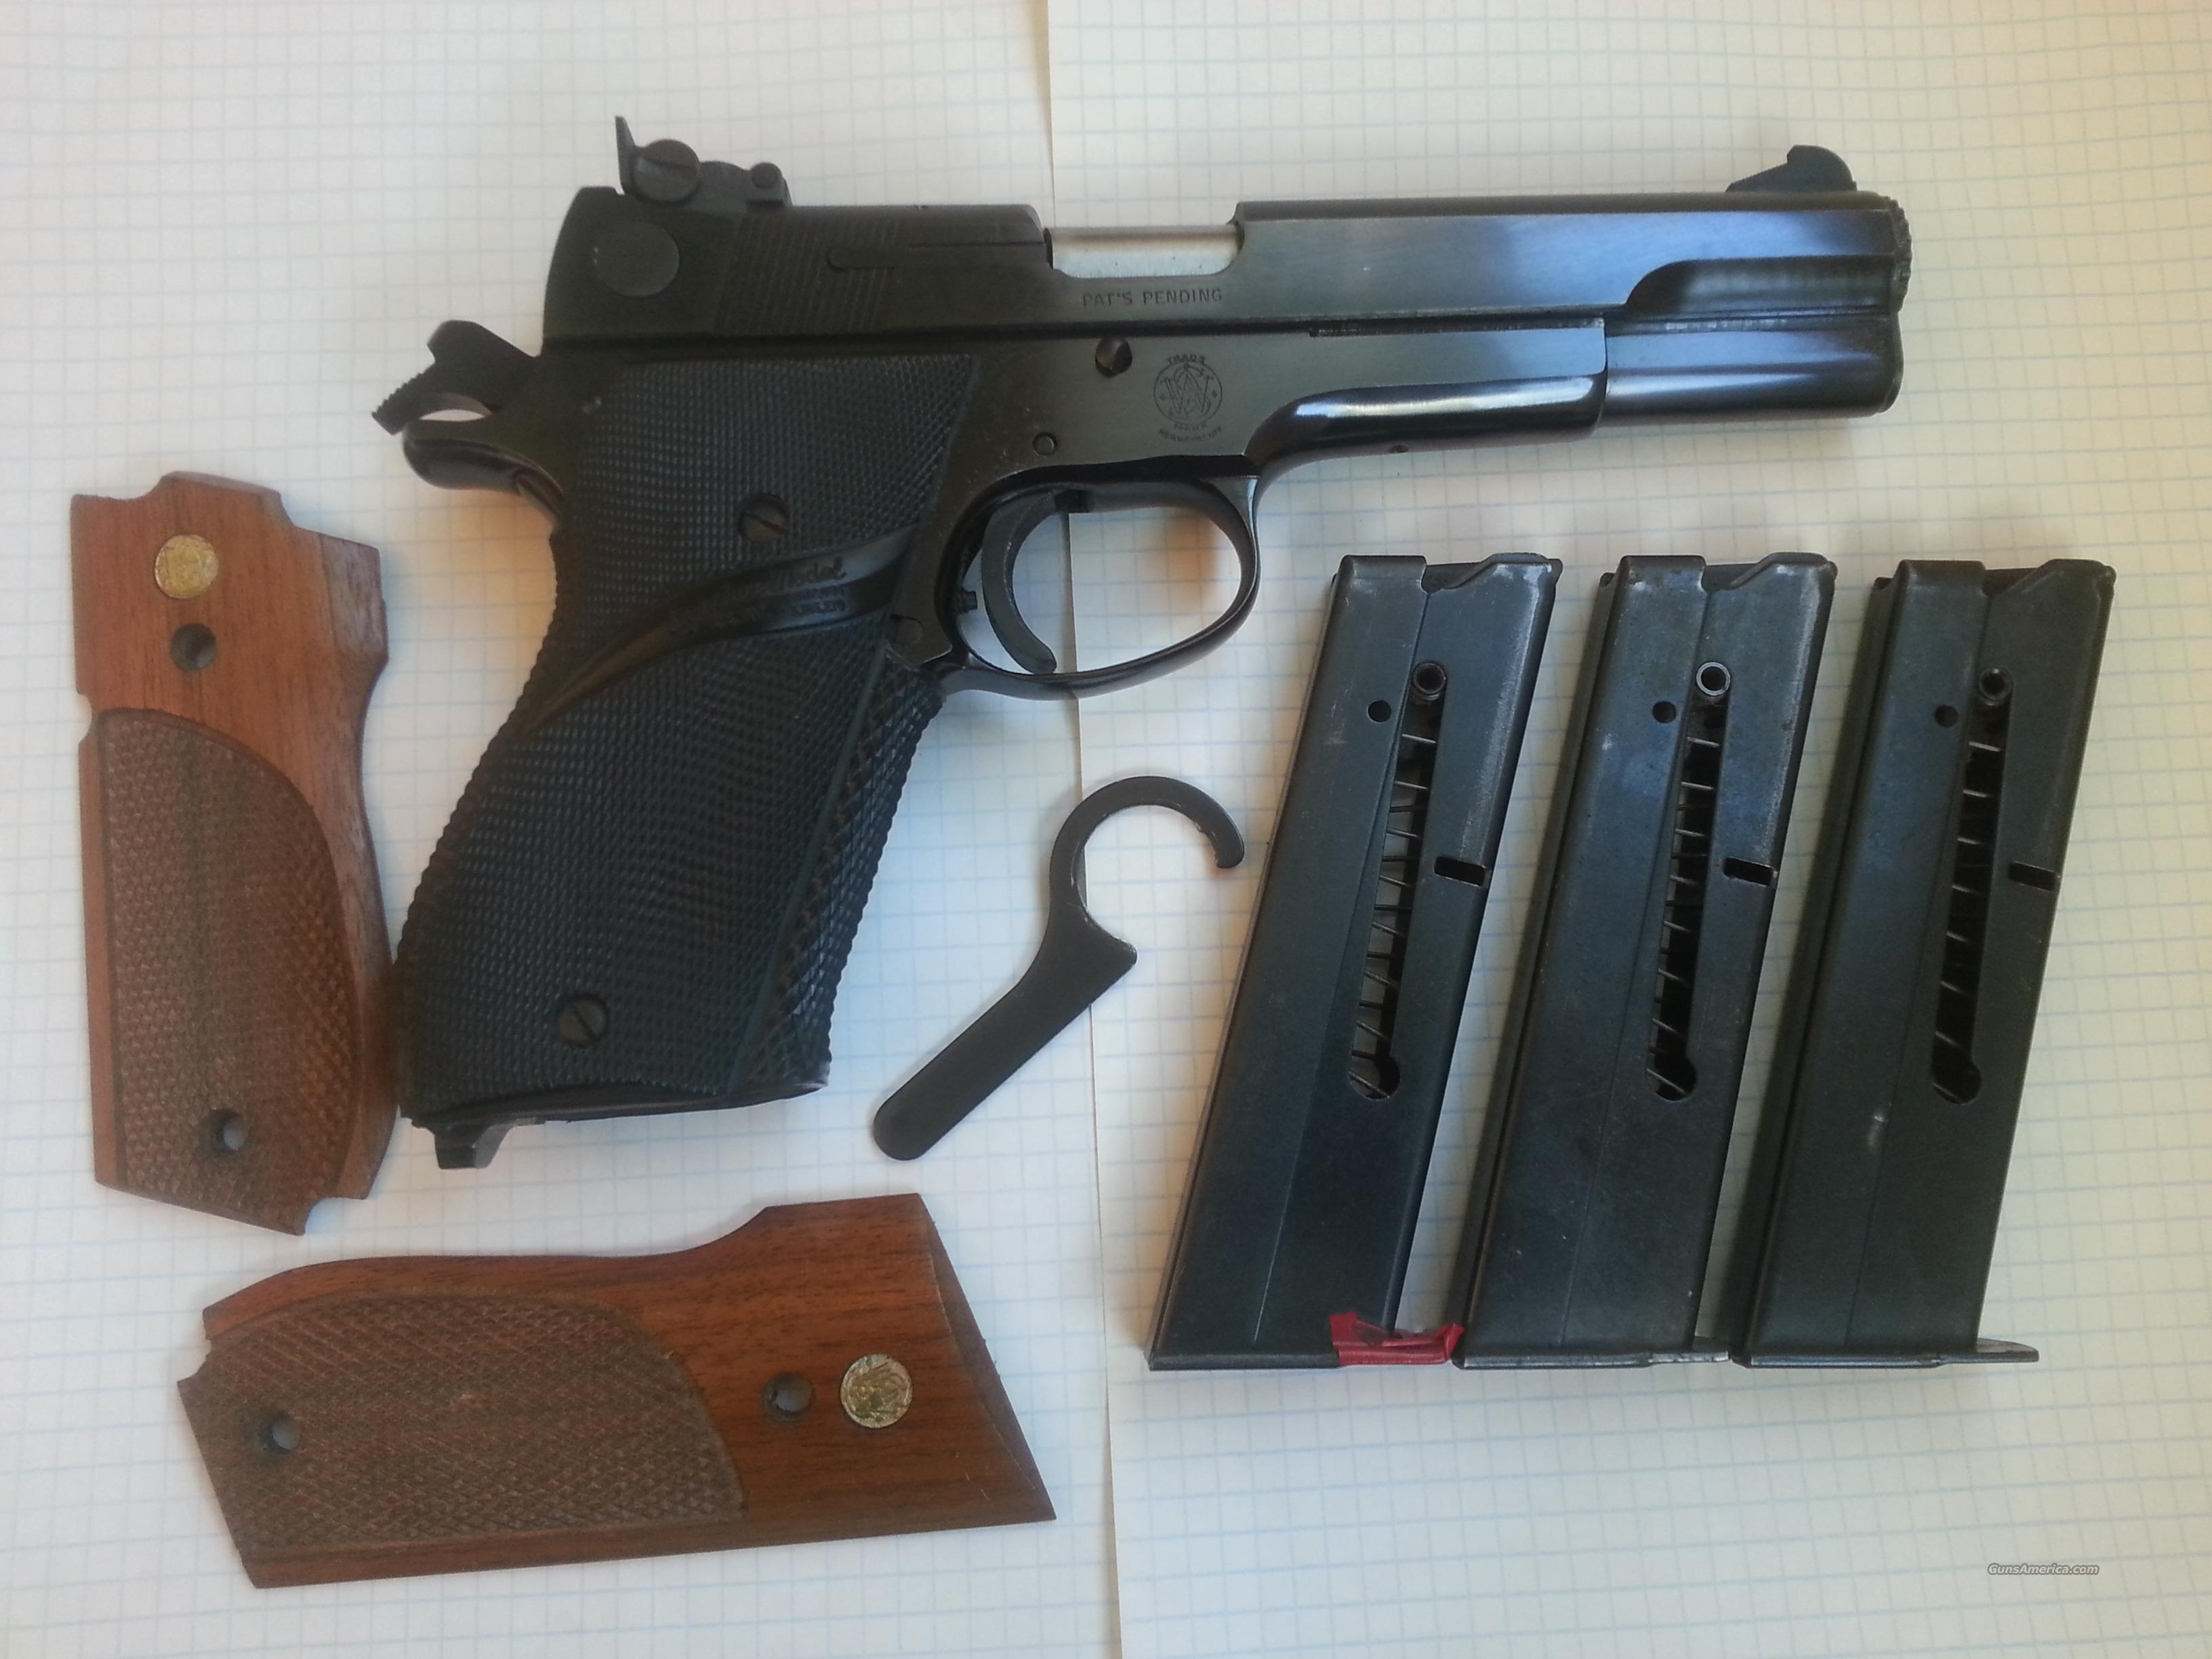 S&W Model 52-2 38 Special target pistol  Guns > Pistols > Smith & Wesson Pistols - Autos > Steel Frame